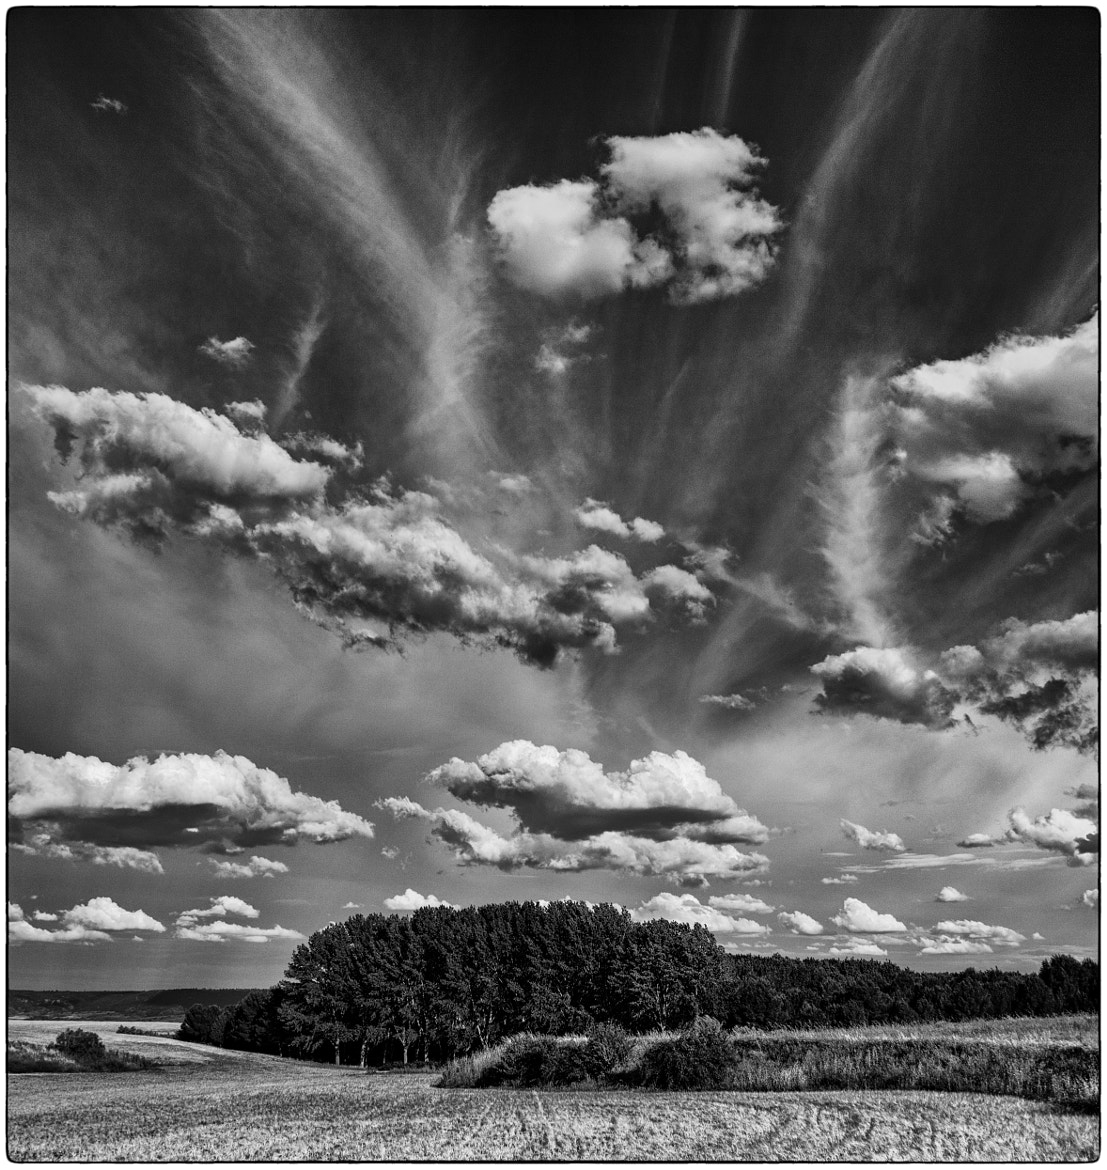 Photograph Cielo y tierra by Luis Mariano González on 500px